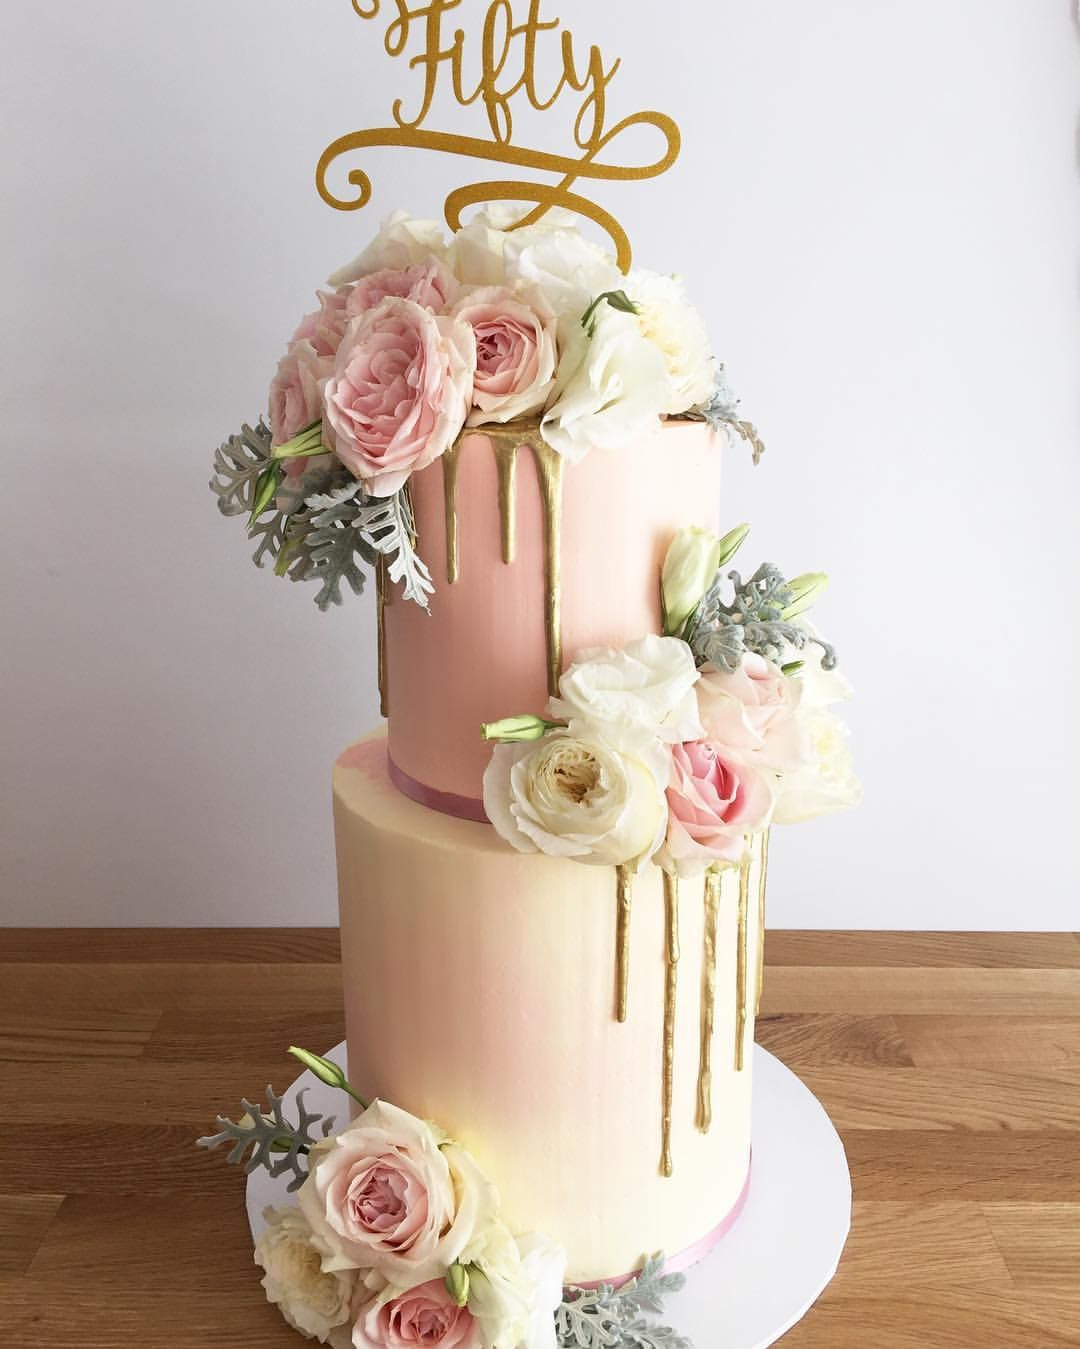 Swell 727 Likes 14 Comments Perth Wedding Cakes Funny Birthday Cards Online Hetedamsfinfo